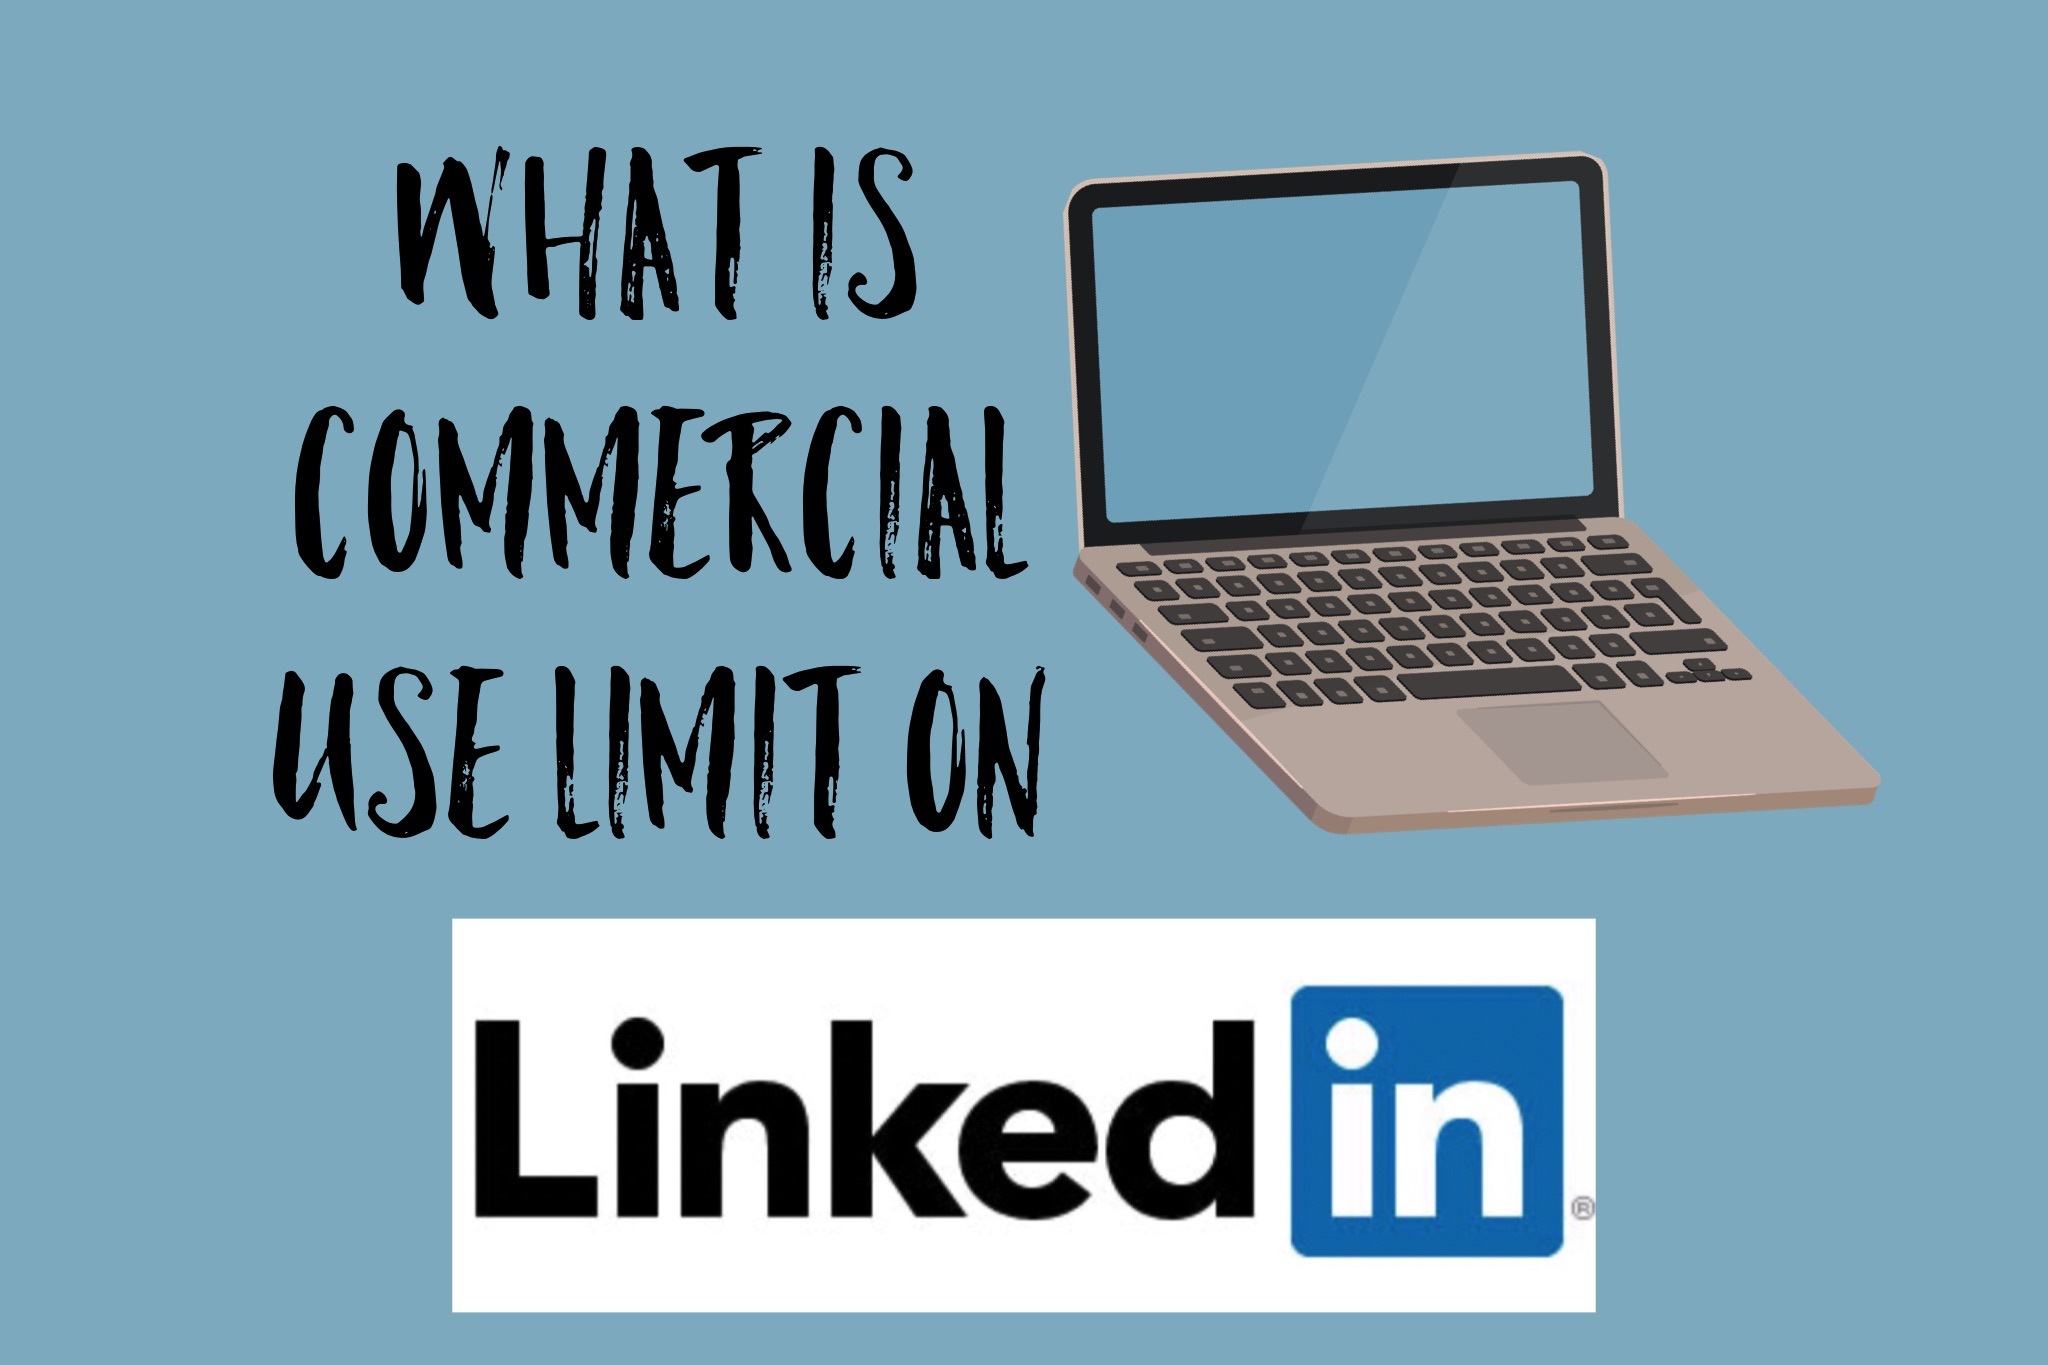 What is Commercial Use Limit on LinkedIn?